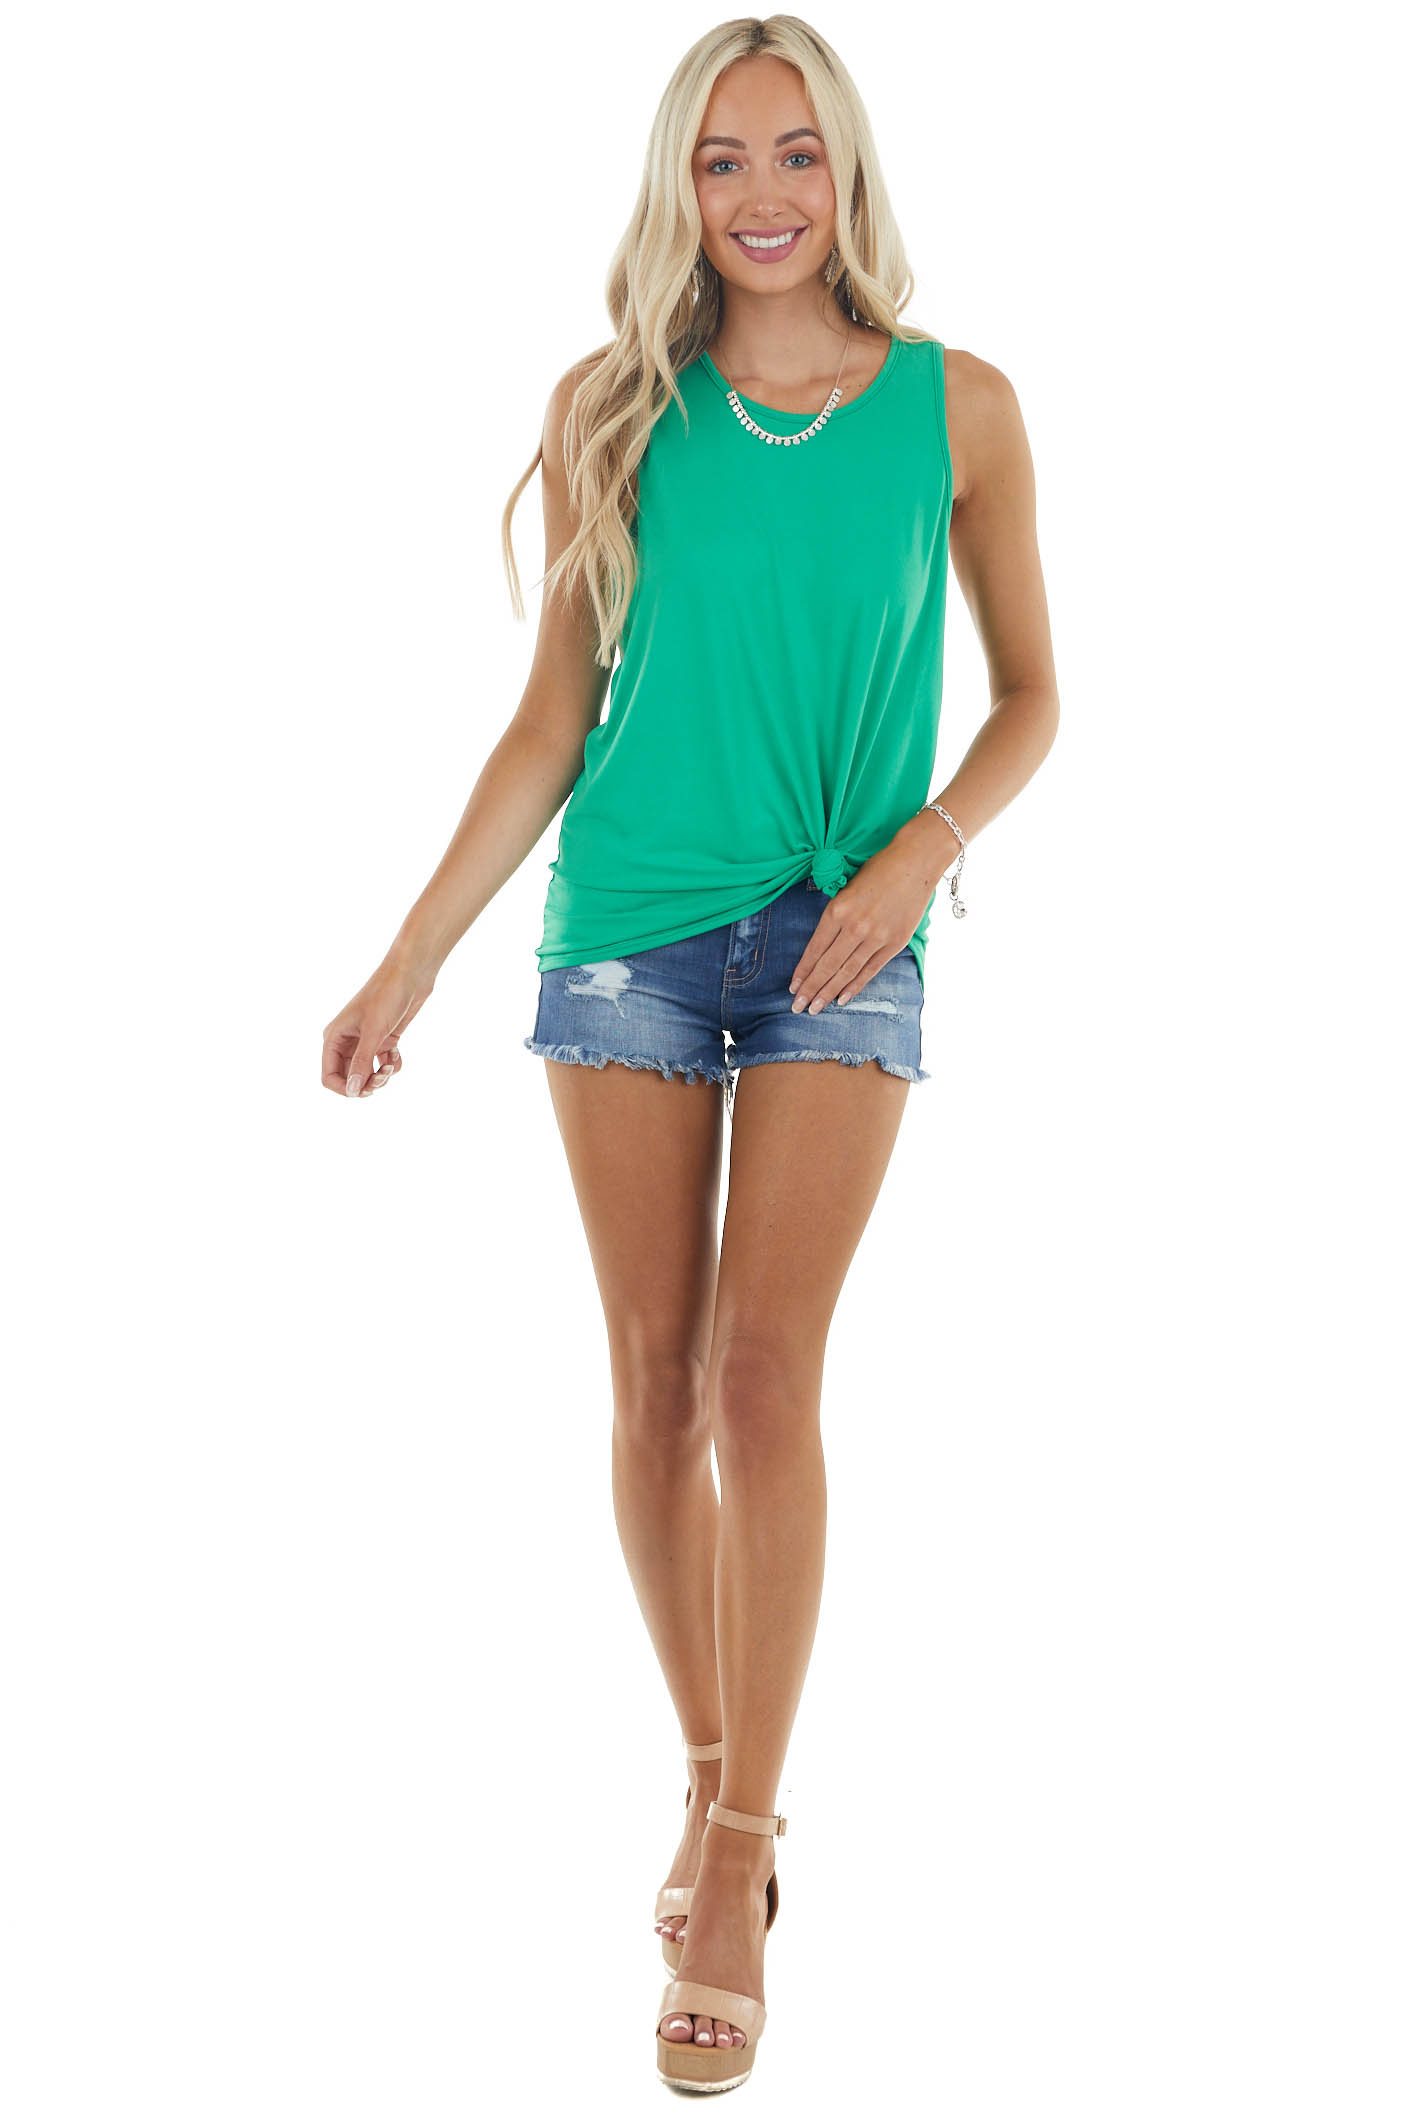 Kelly Green Twisted Racerback Stretchy Knit Tank Top